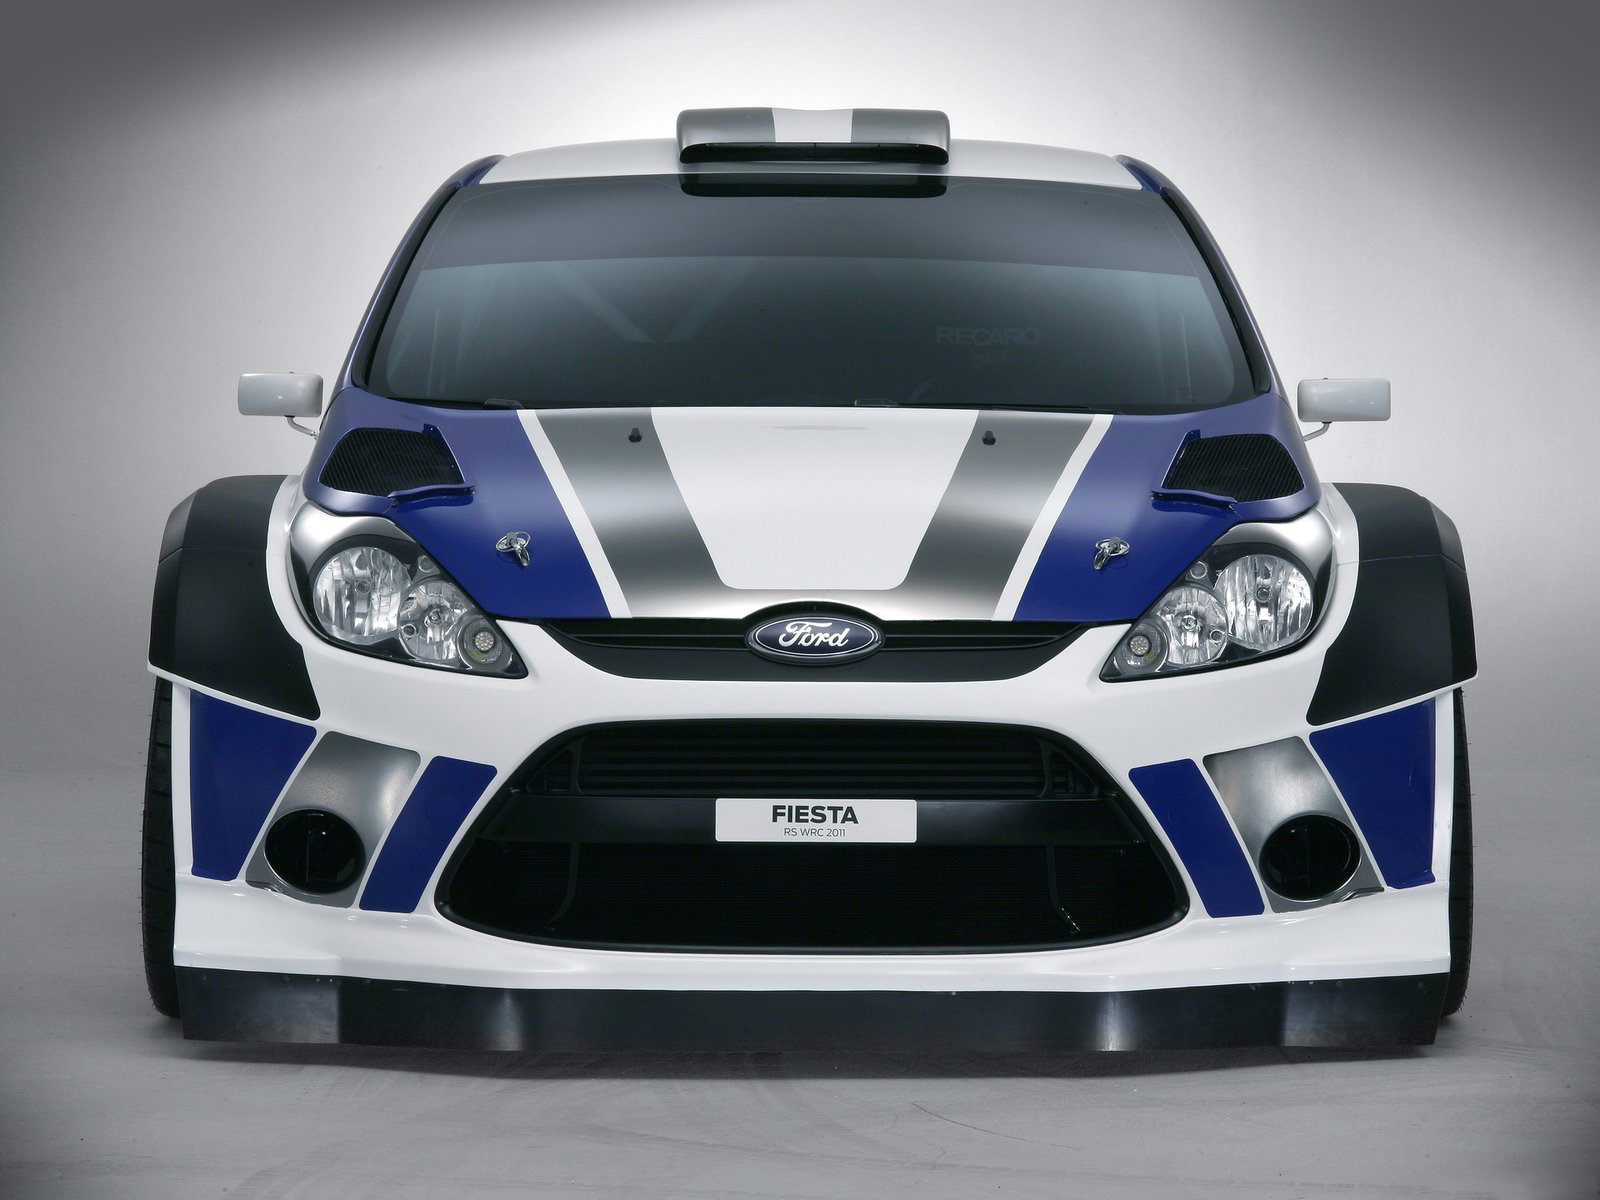 2011 Ford Fiesta Rs Wrc Car Wallpaper Accident Lawyers